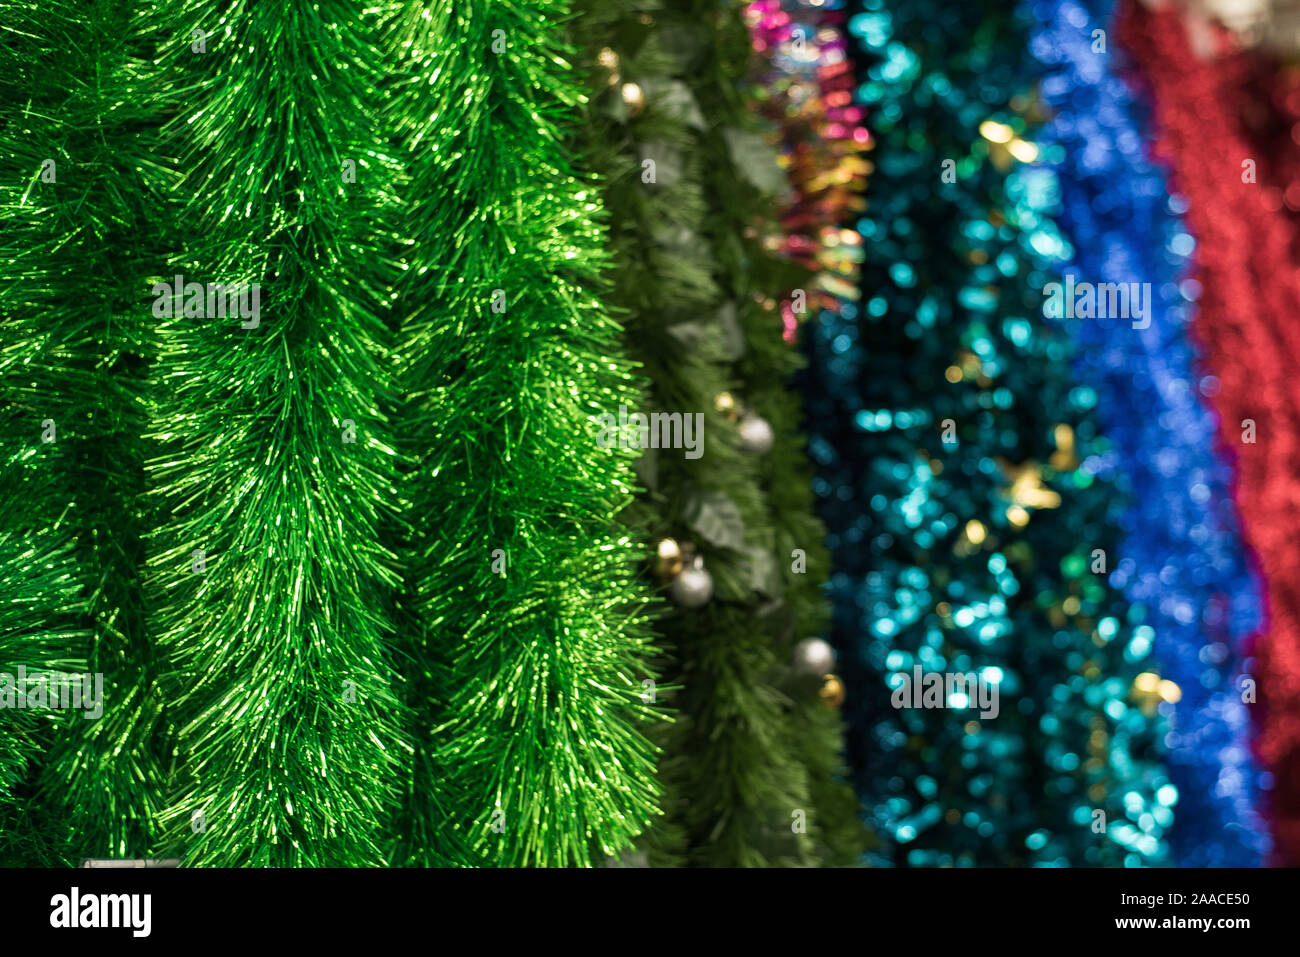 Multi Colored Garlands And Tinsel On A Store Counter Red Blue Green Christmas Tree Garland Hang On A Shelf In A Store Stock Photo Alamy